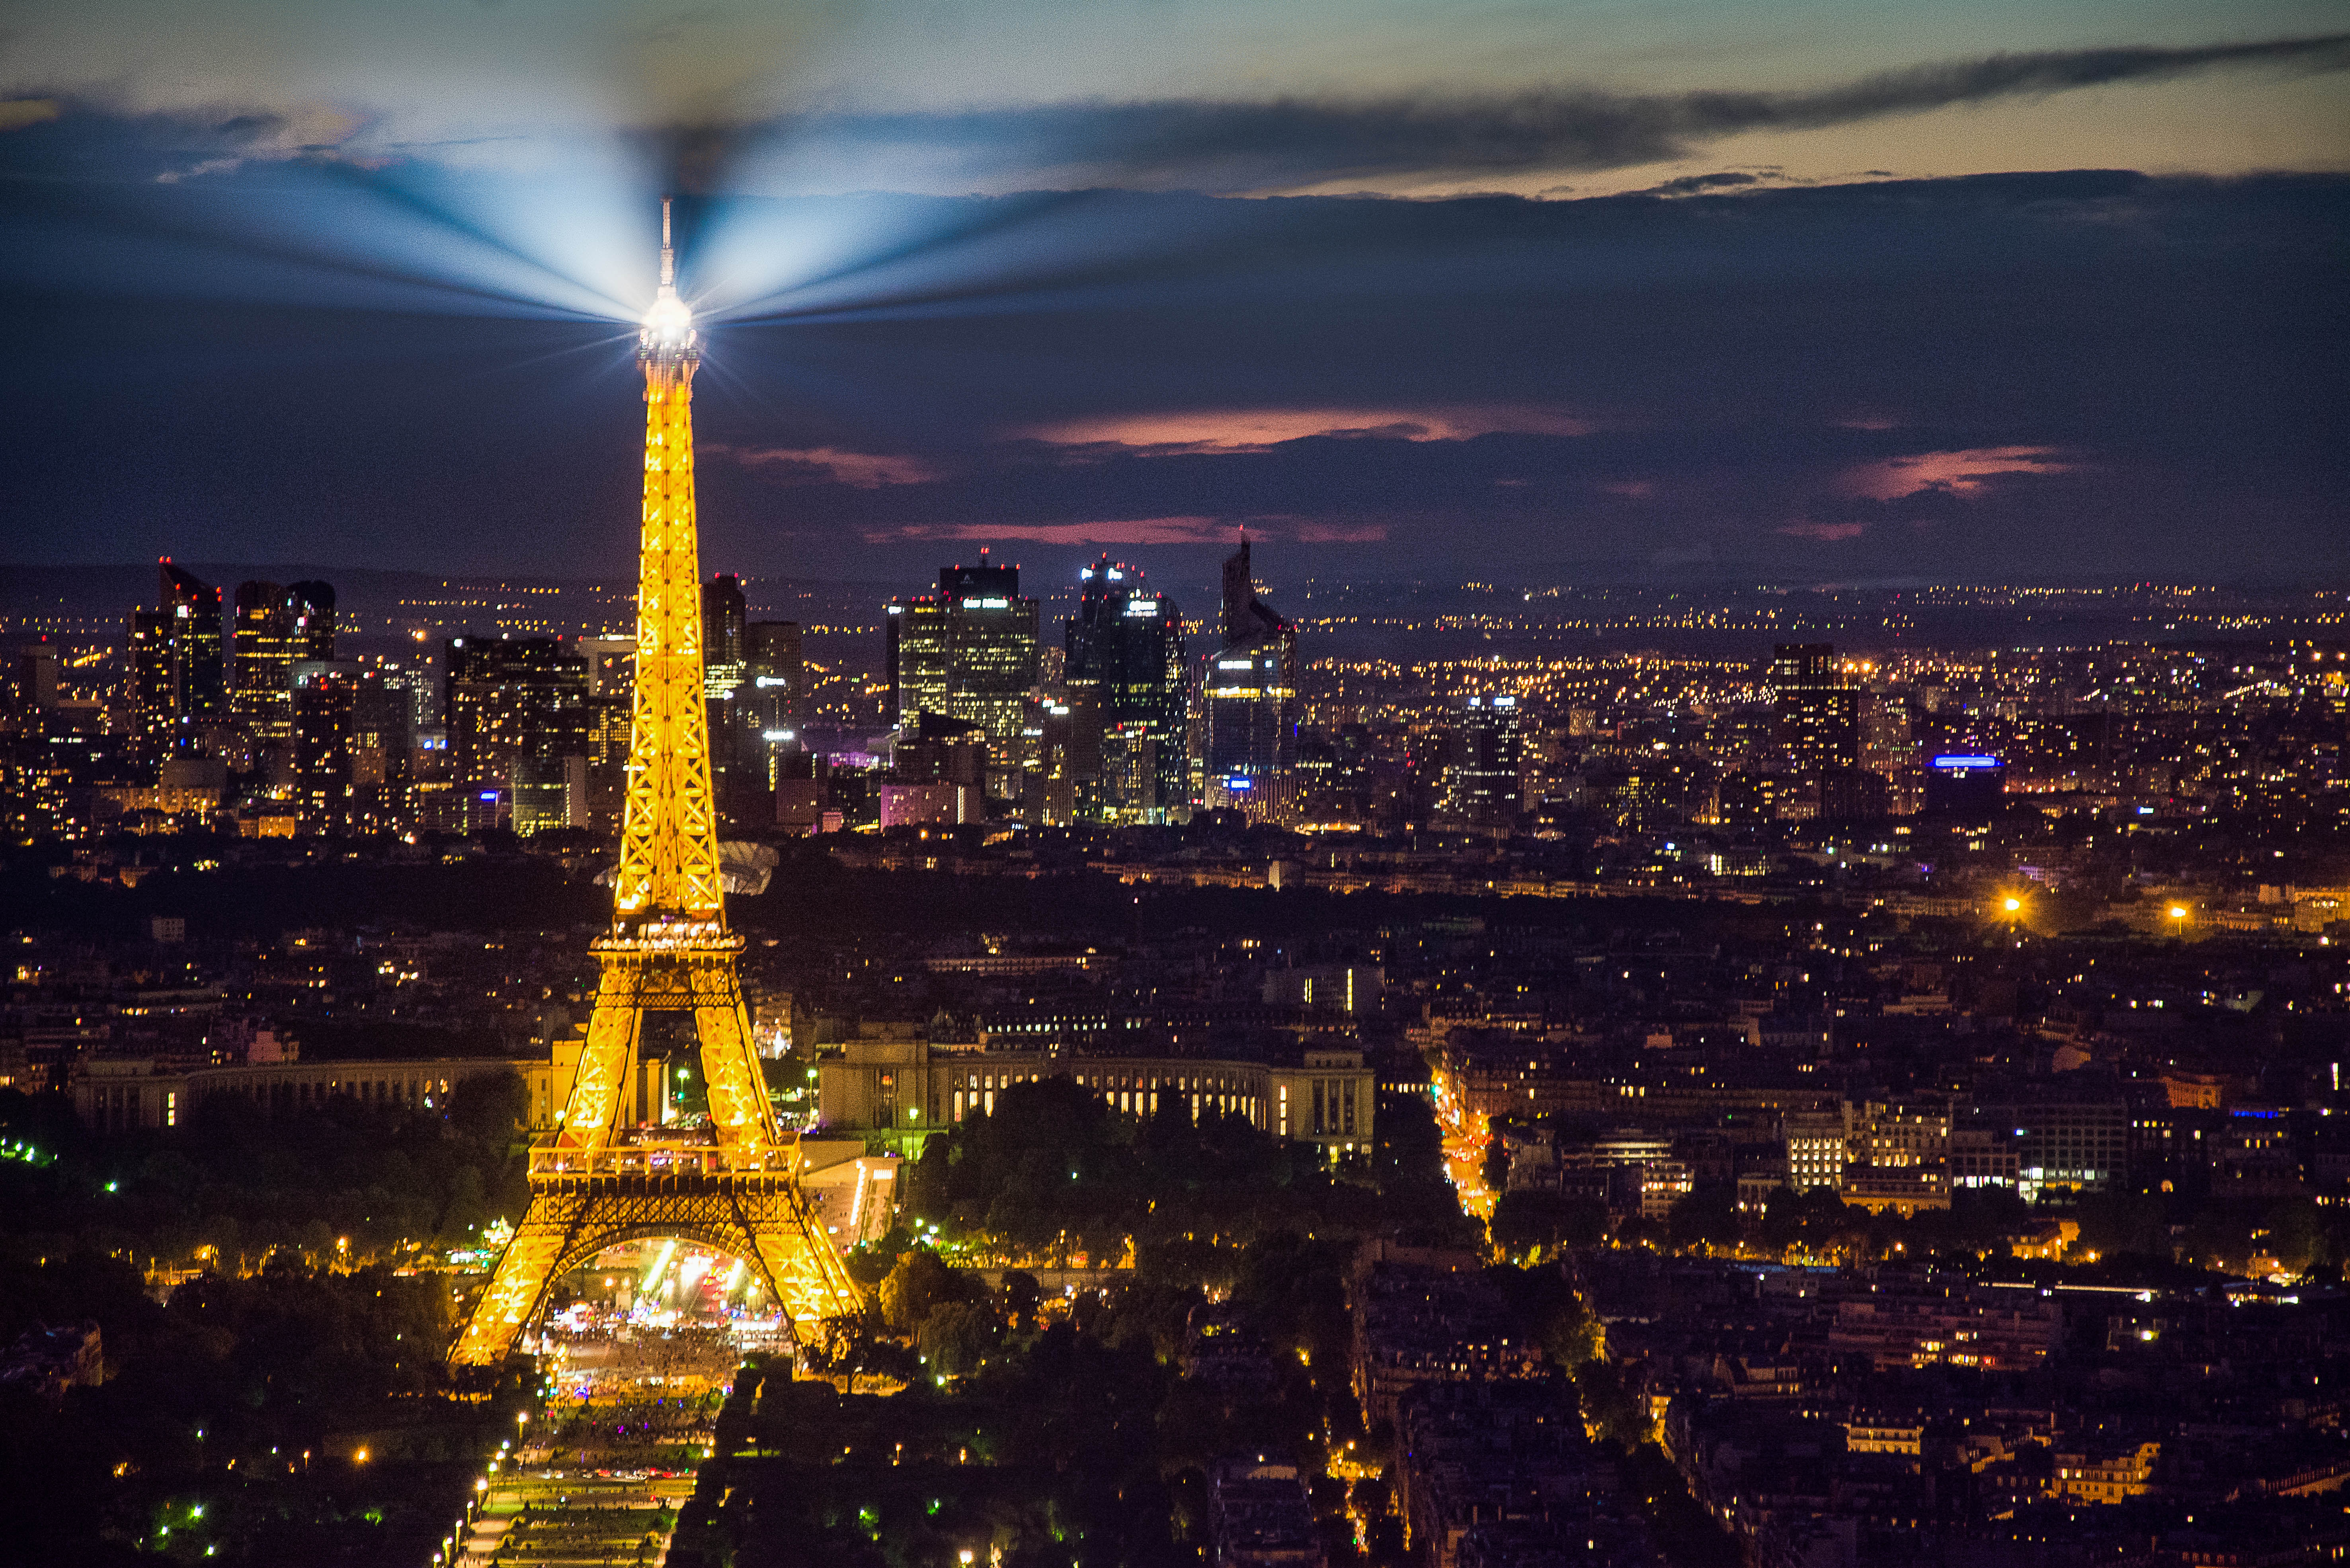 Light trails of Eiffel Tower from montparnasse tower